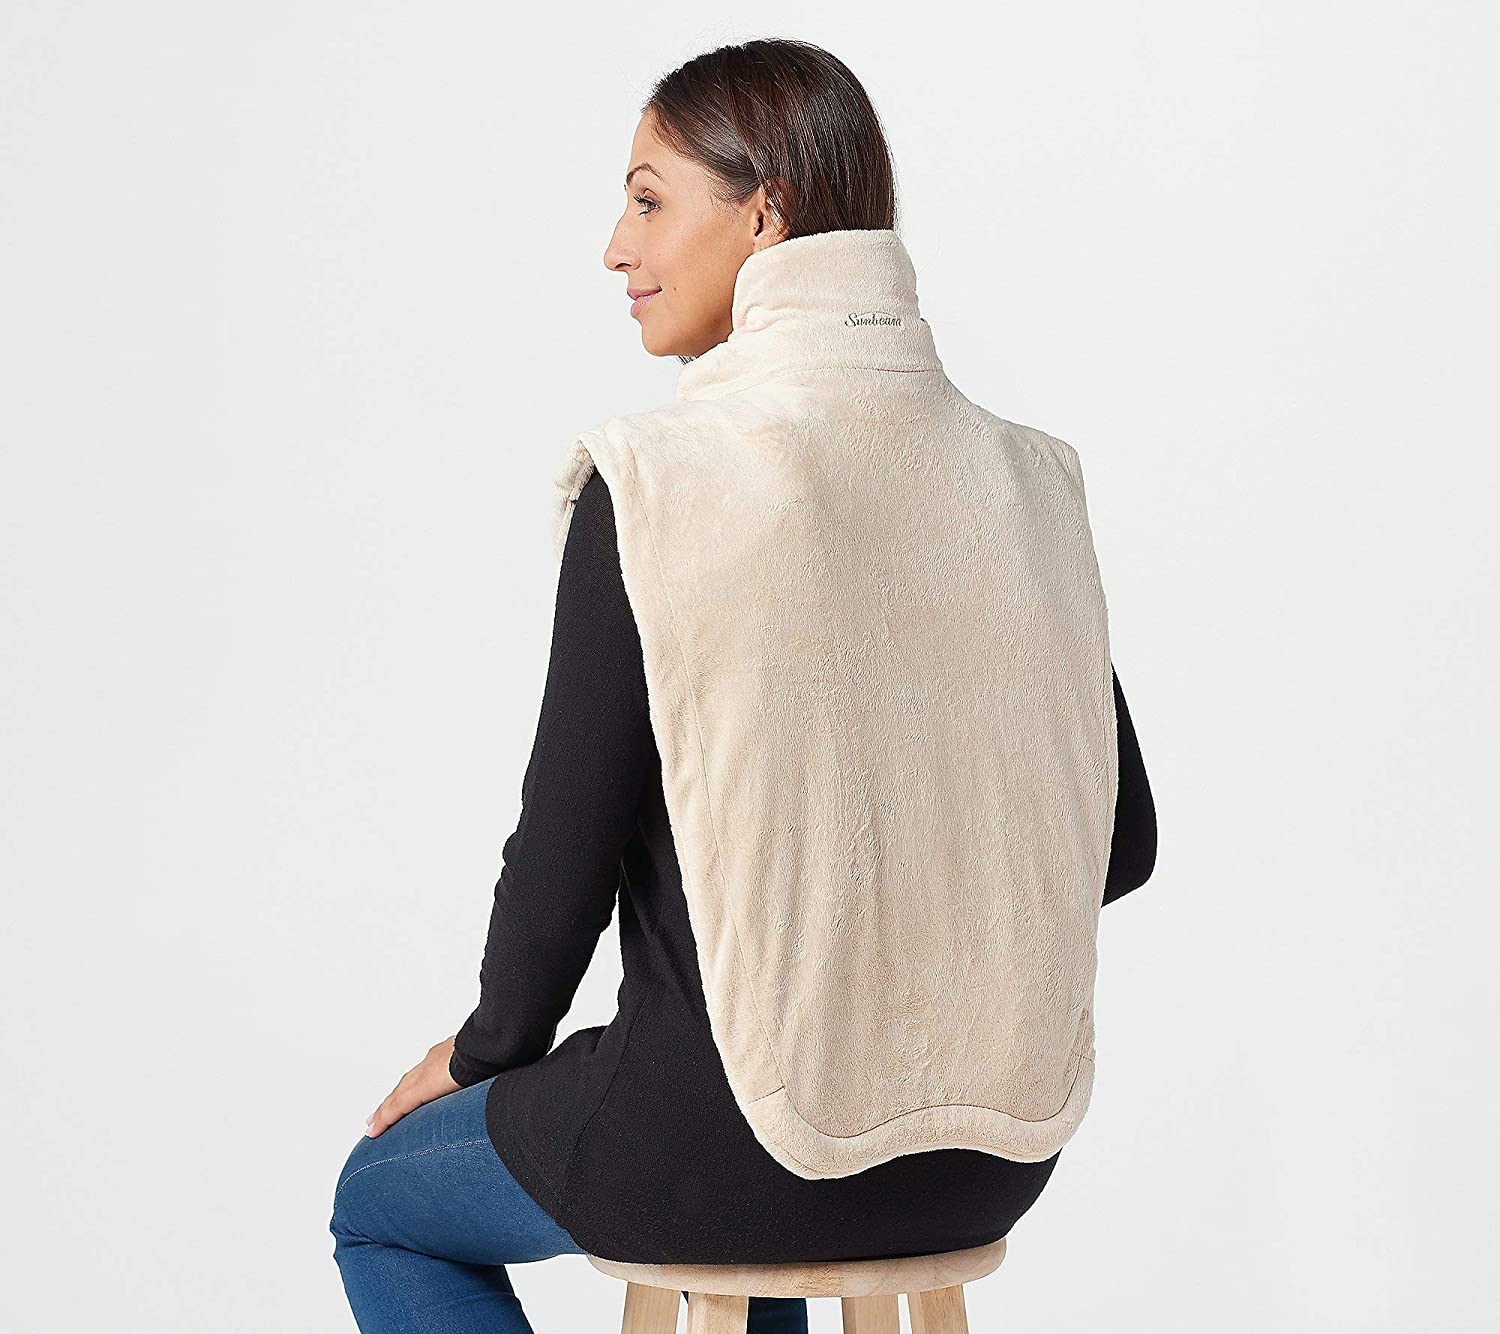 Sunbeam 2091105 Renue Extended Neck XXL Heat Wrap with Massage, Taupe